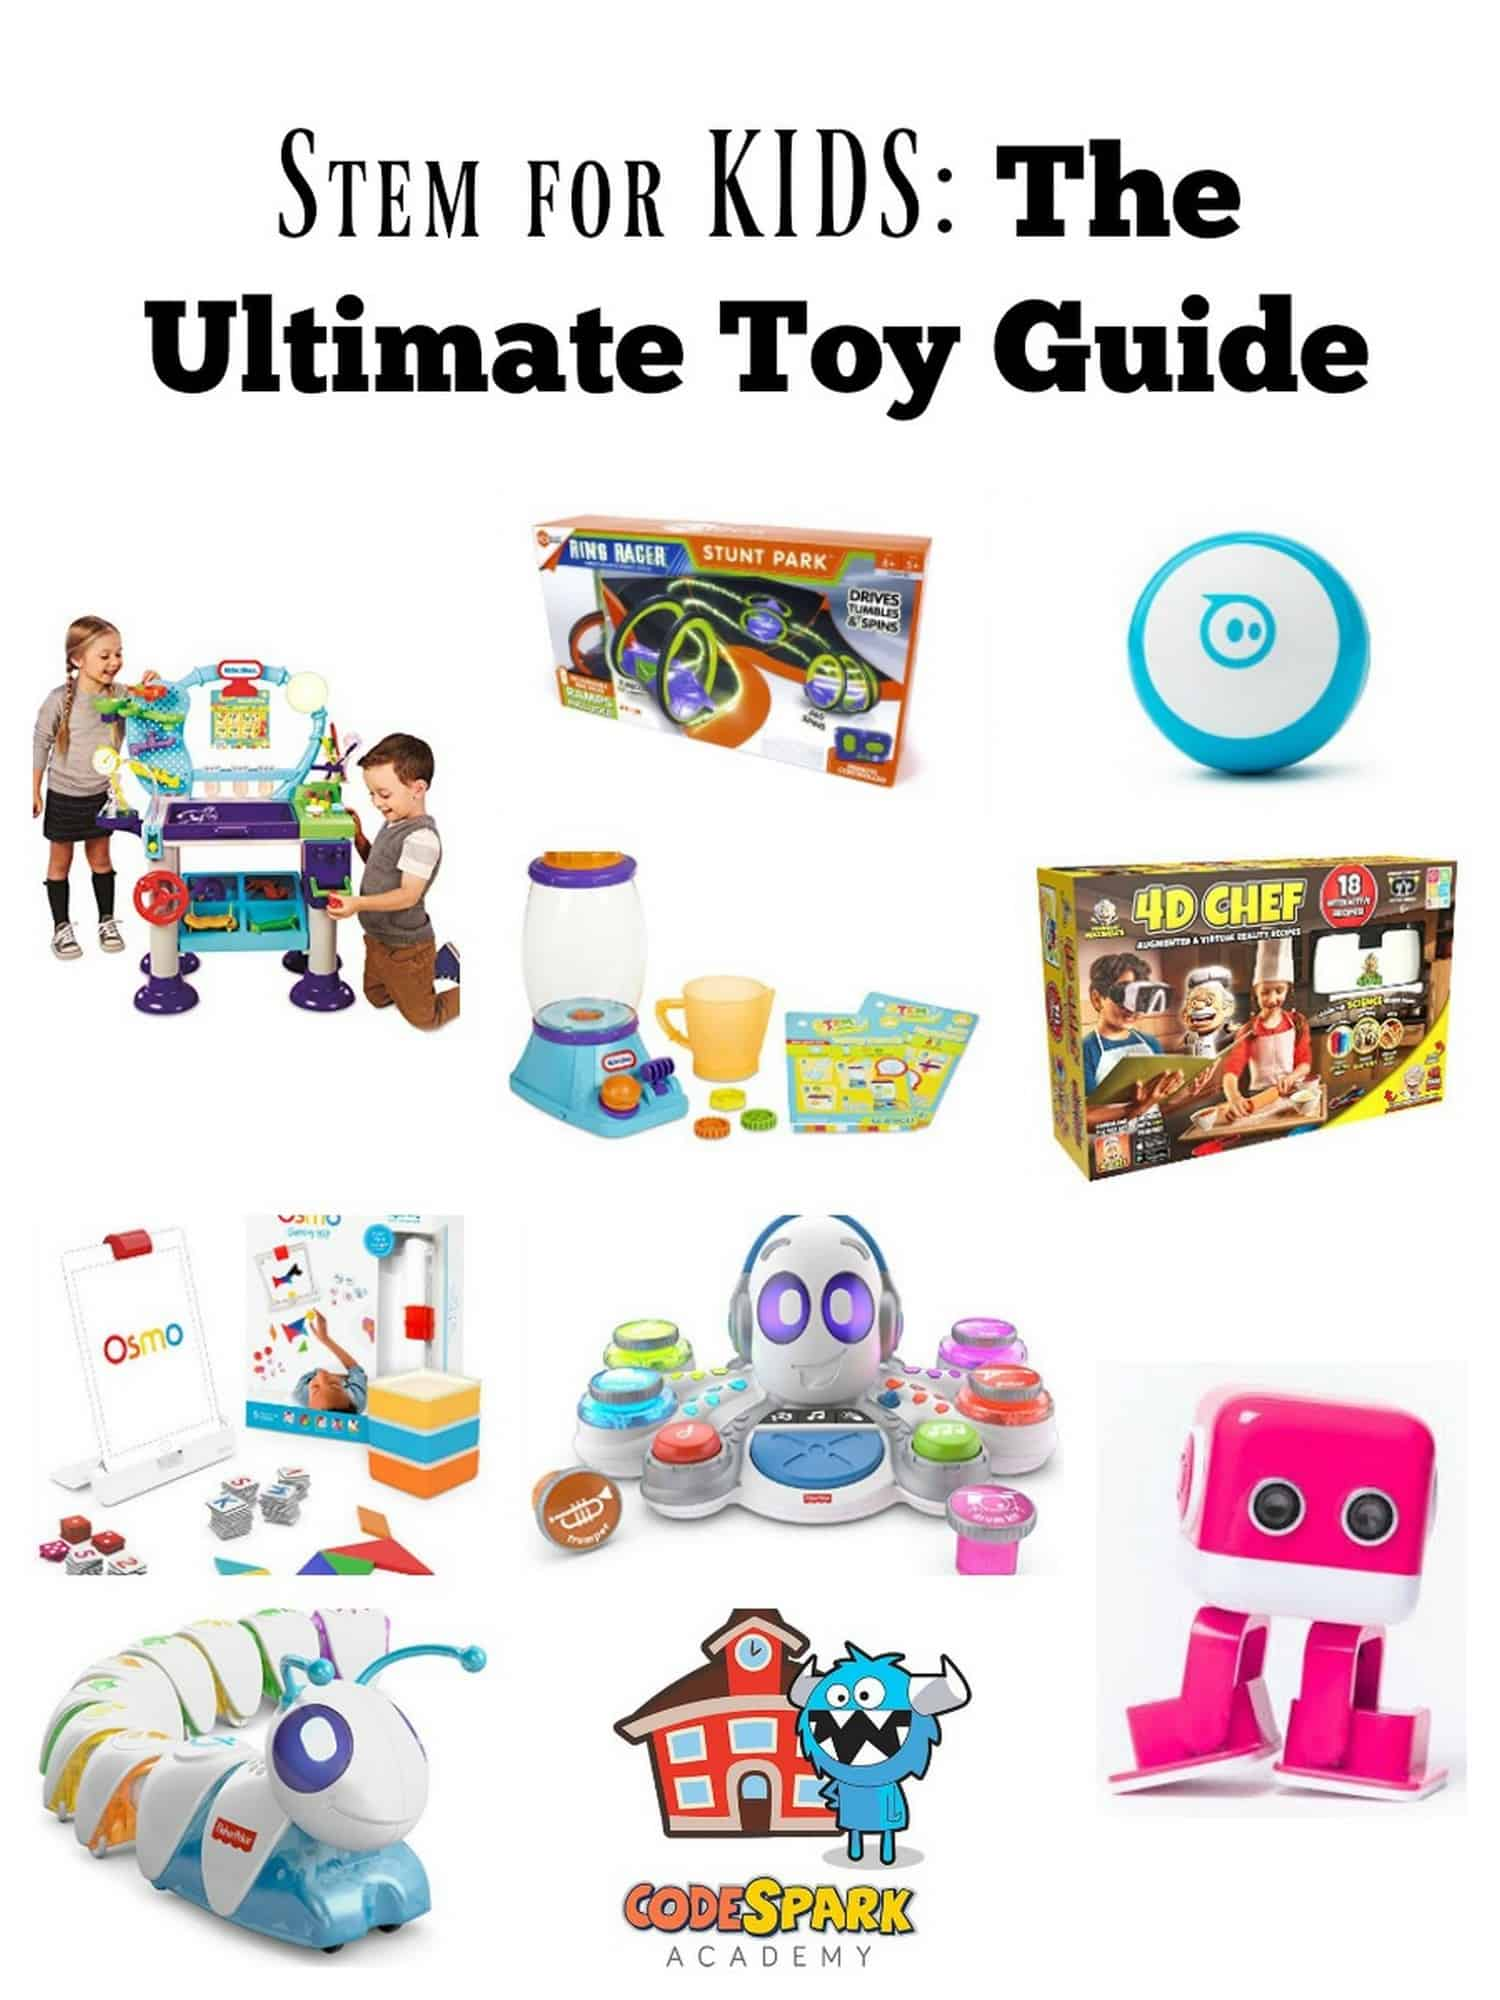 Stem for Kids: The Ultimate Gift Guide